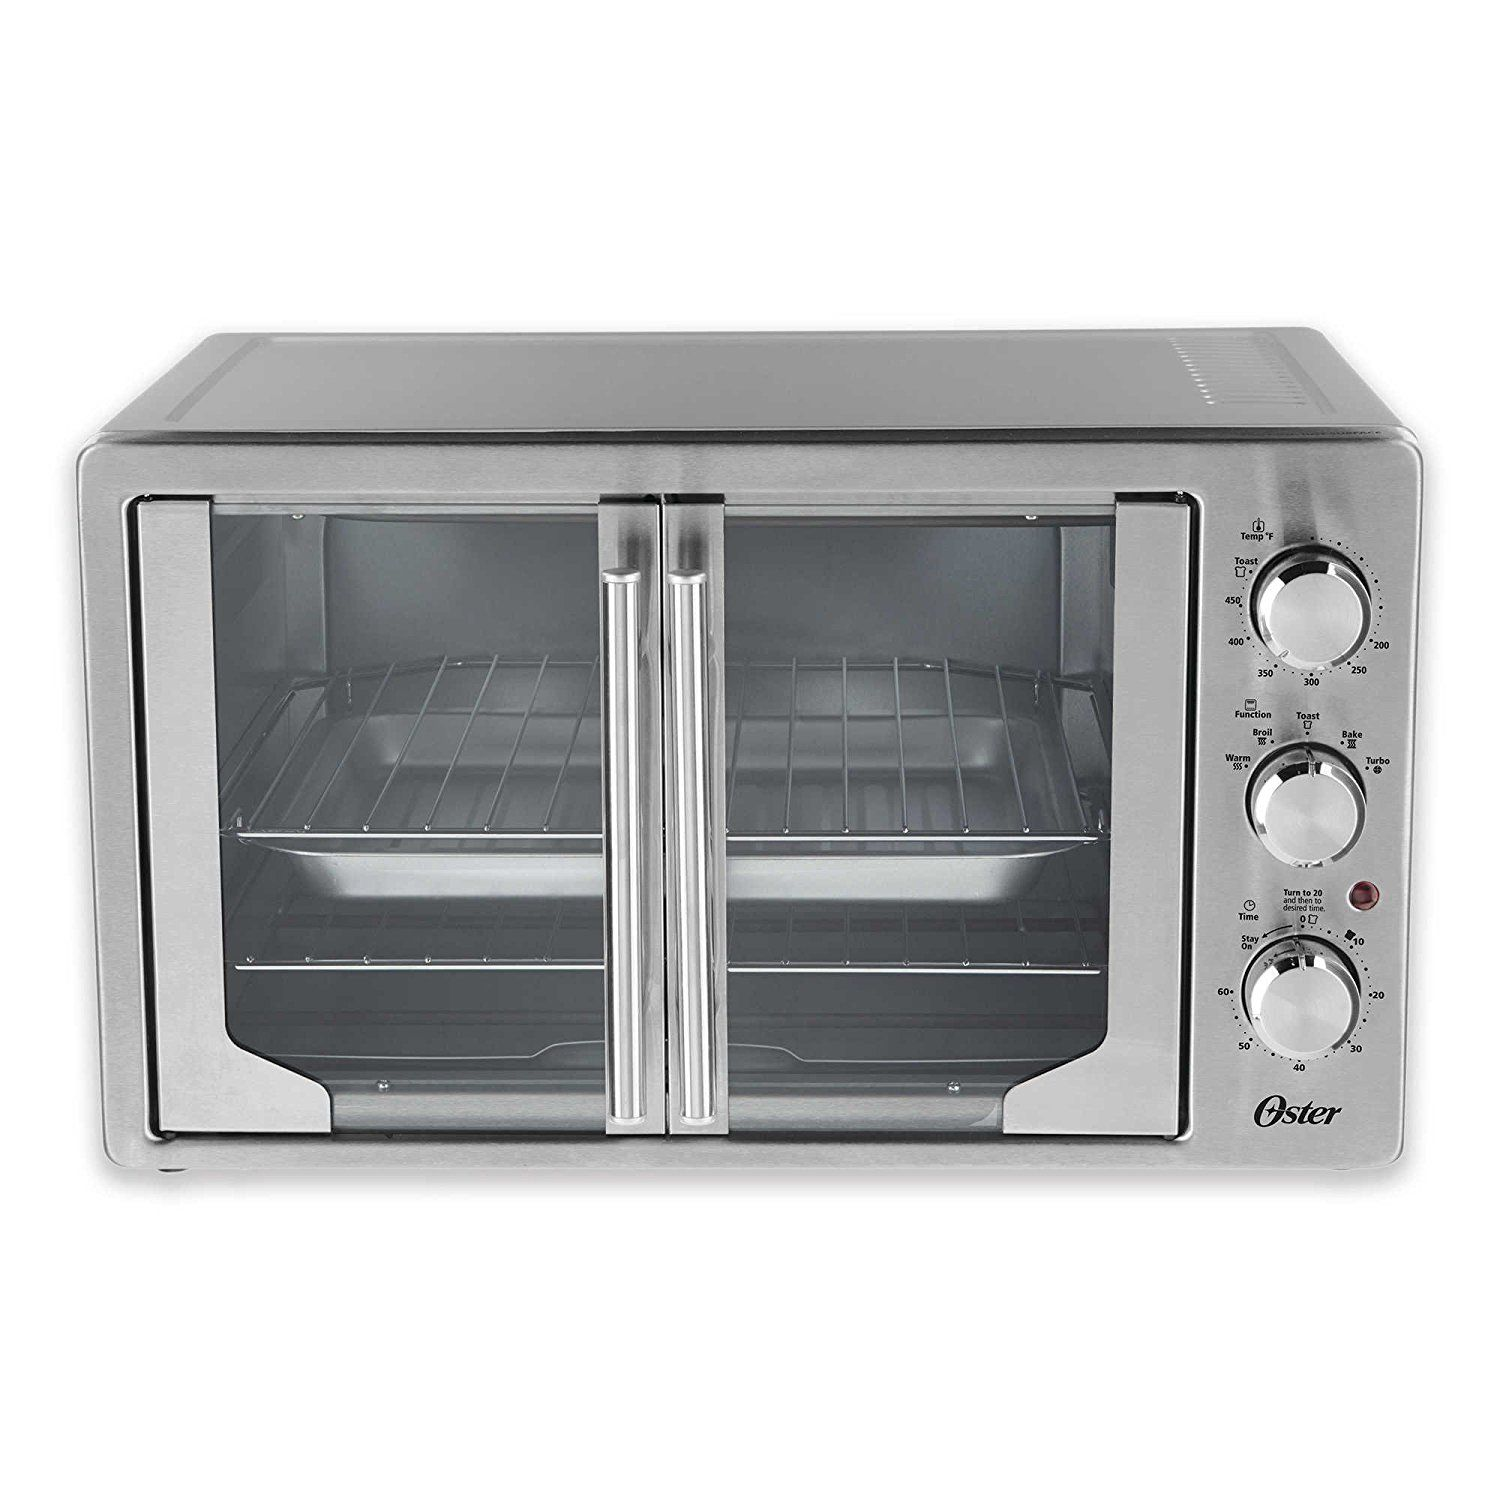 Oster Tssttvfdxl French Door Oven With Convection Read More